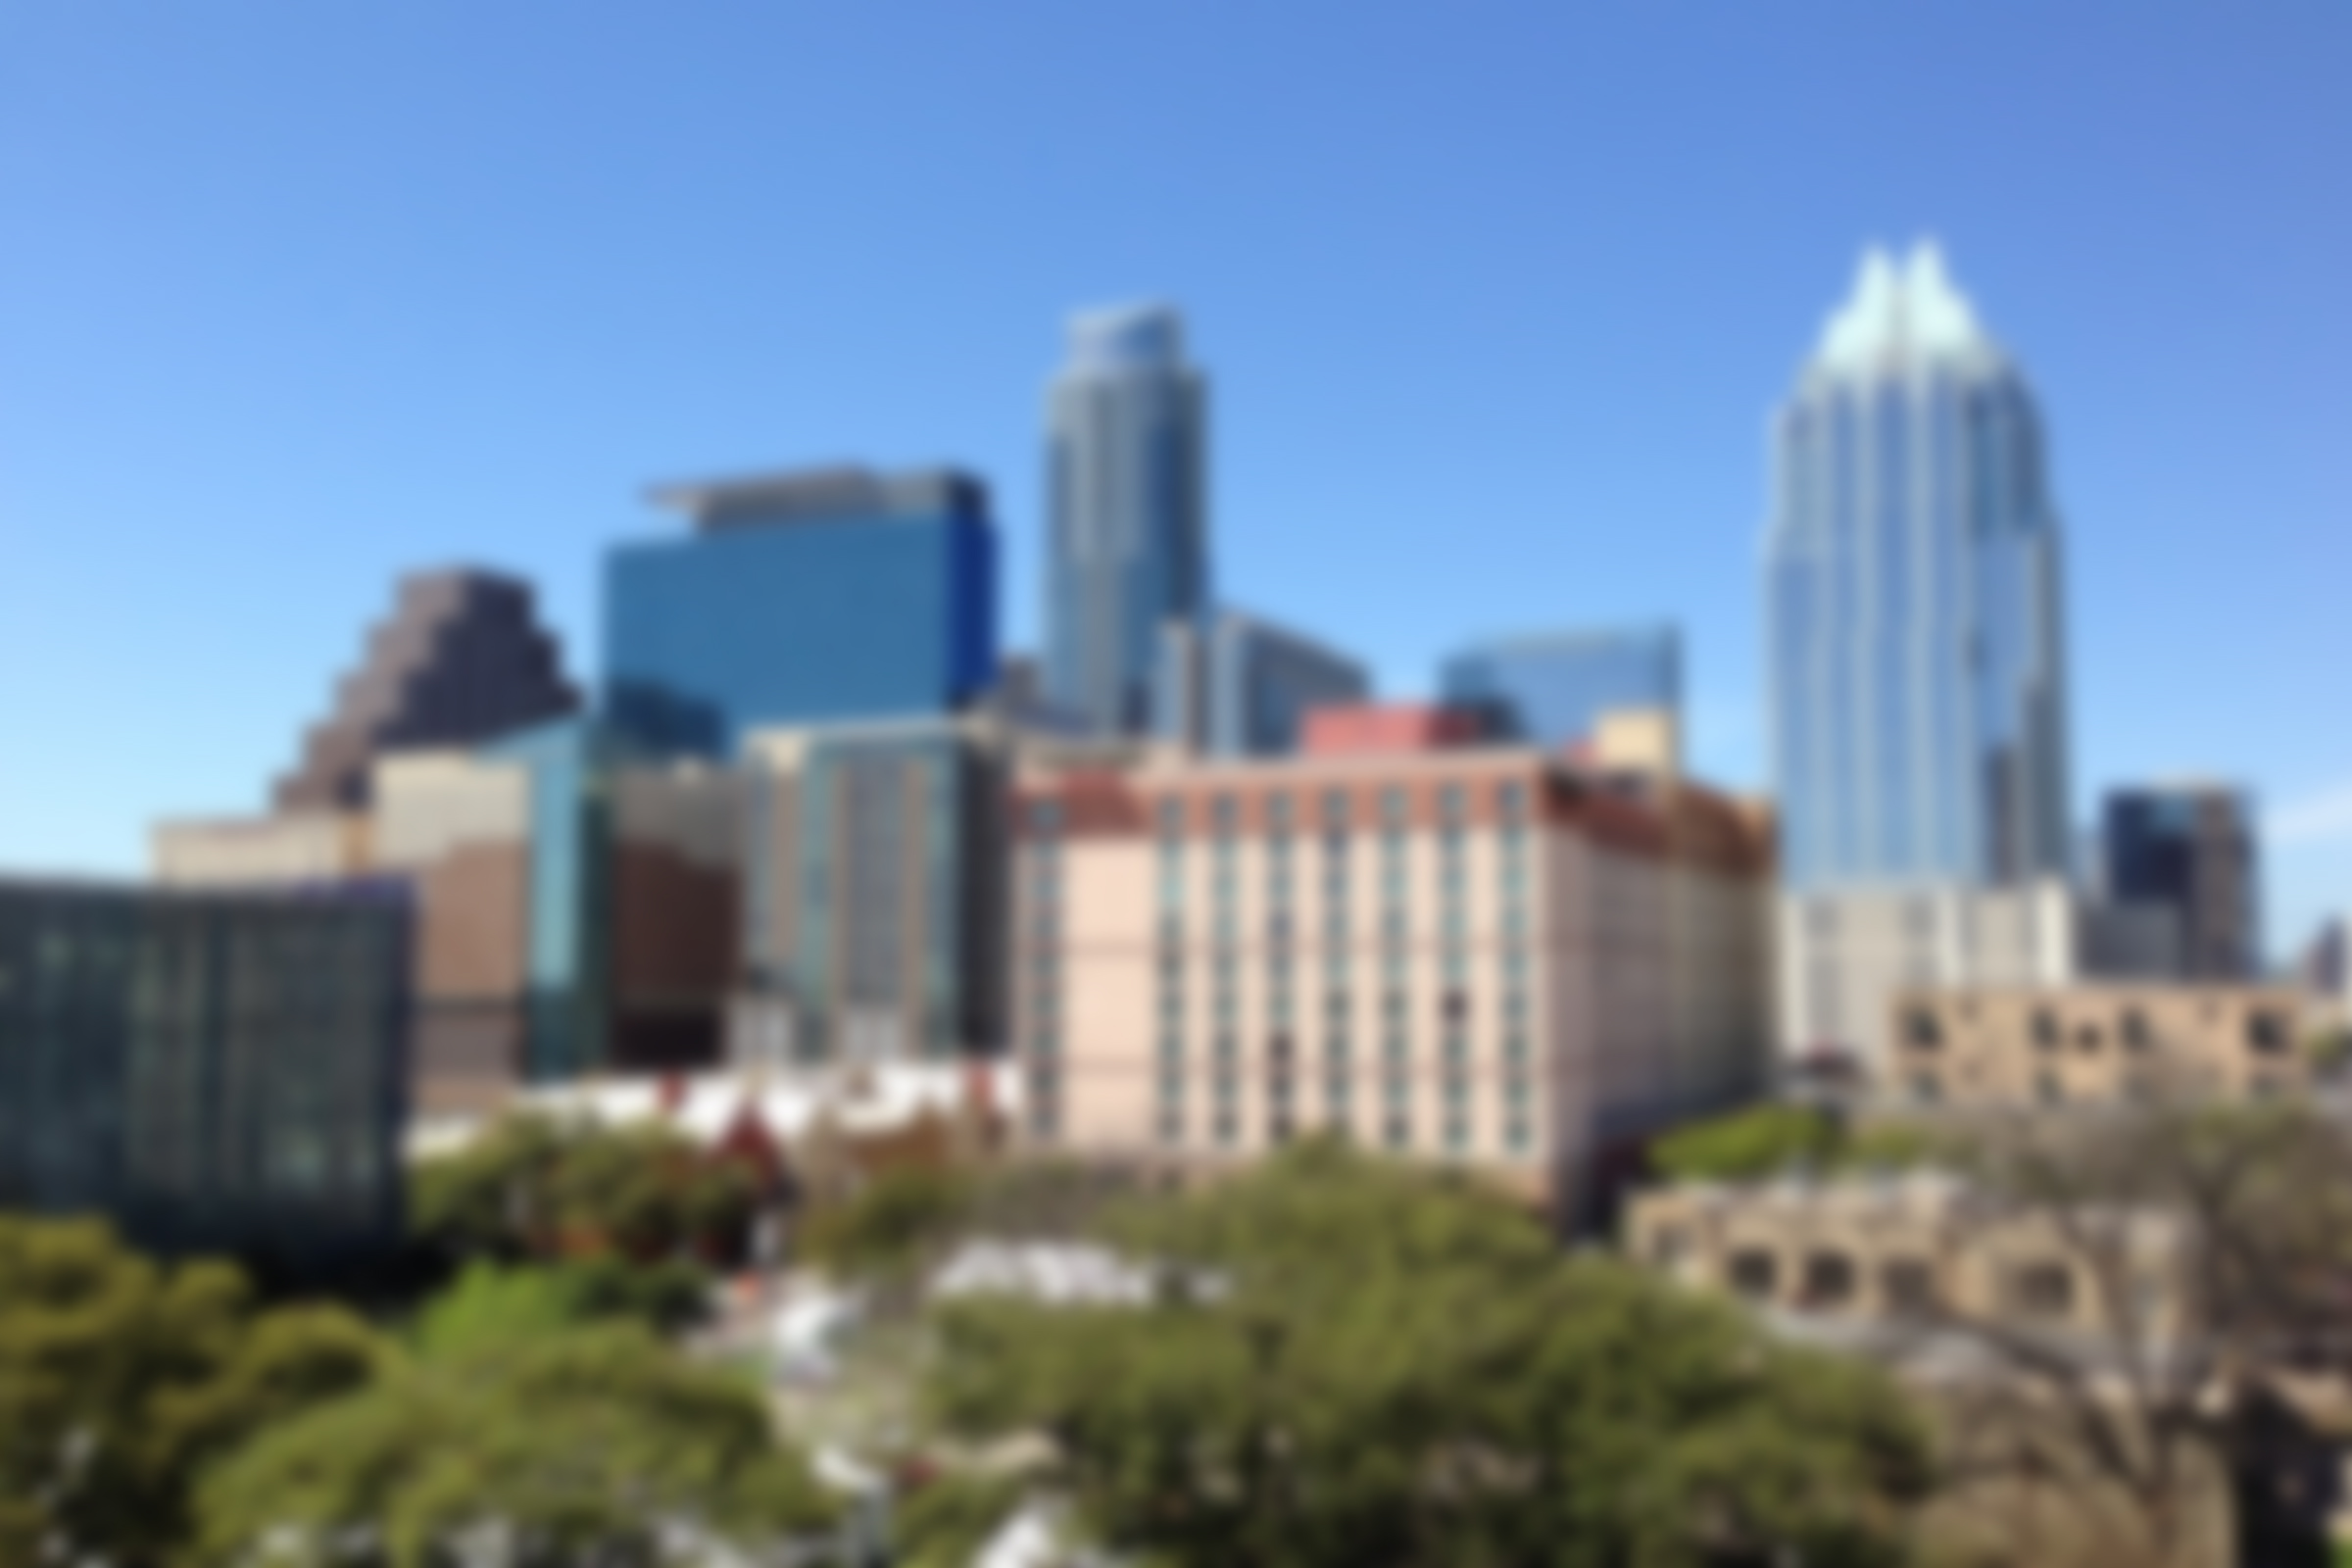 A photo of Austin's skyline, but blurred.